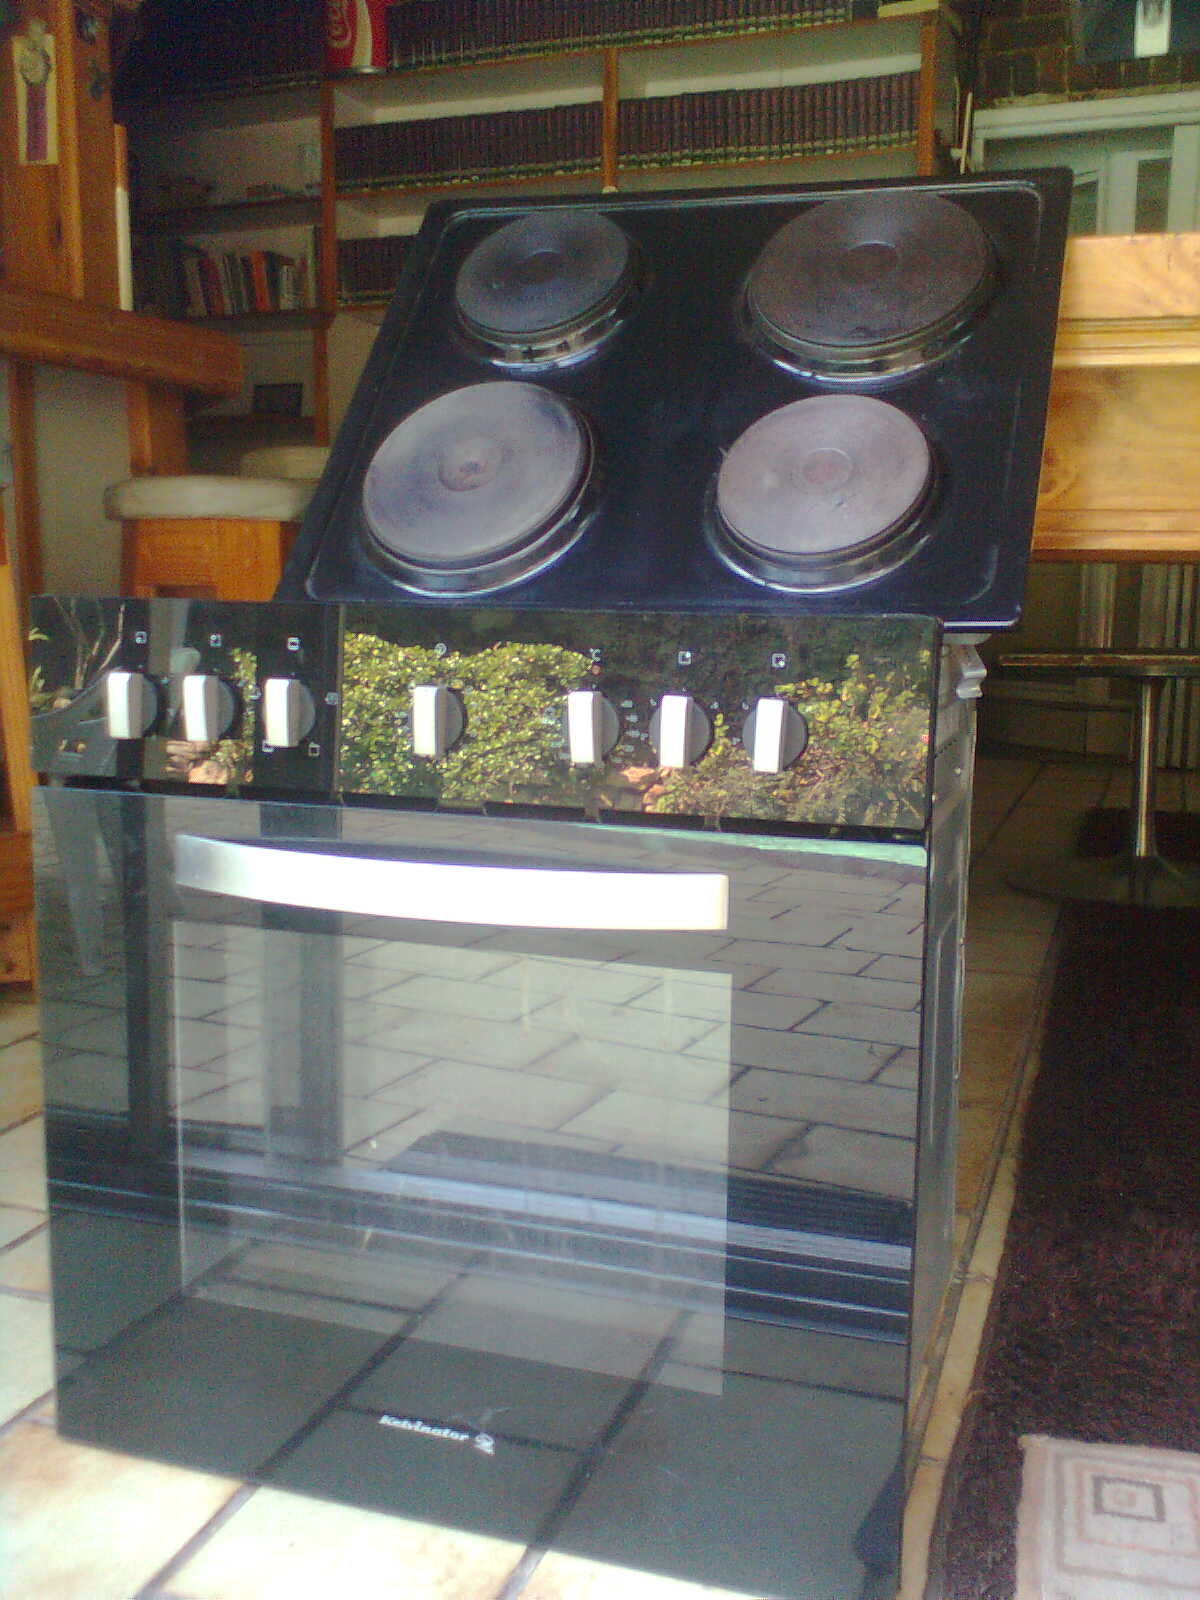 All makes and models of stoves and ovens repaired.